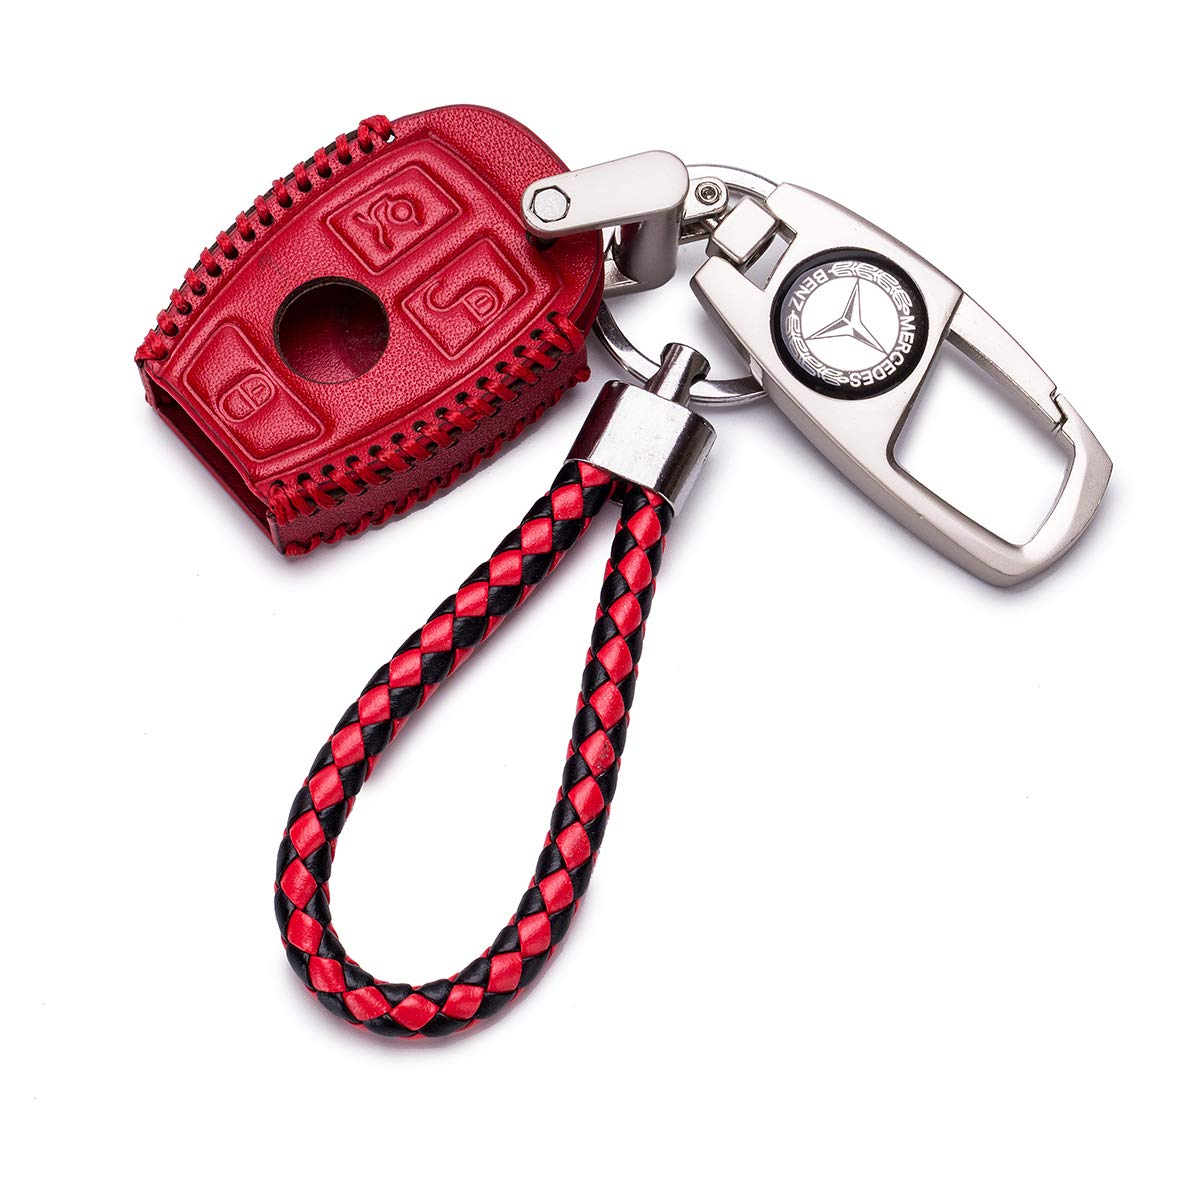 QZS Mercedes Benz Key Chain Fob Cover Shell Remote Case Bag for E C R CL GL SL CLK SLK(Benz Red) by QZS